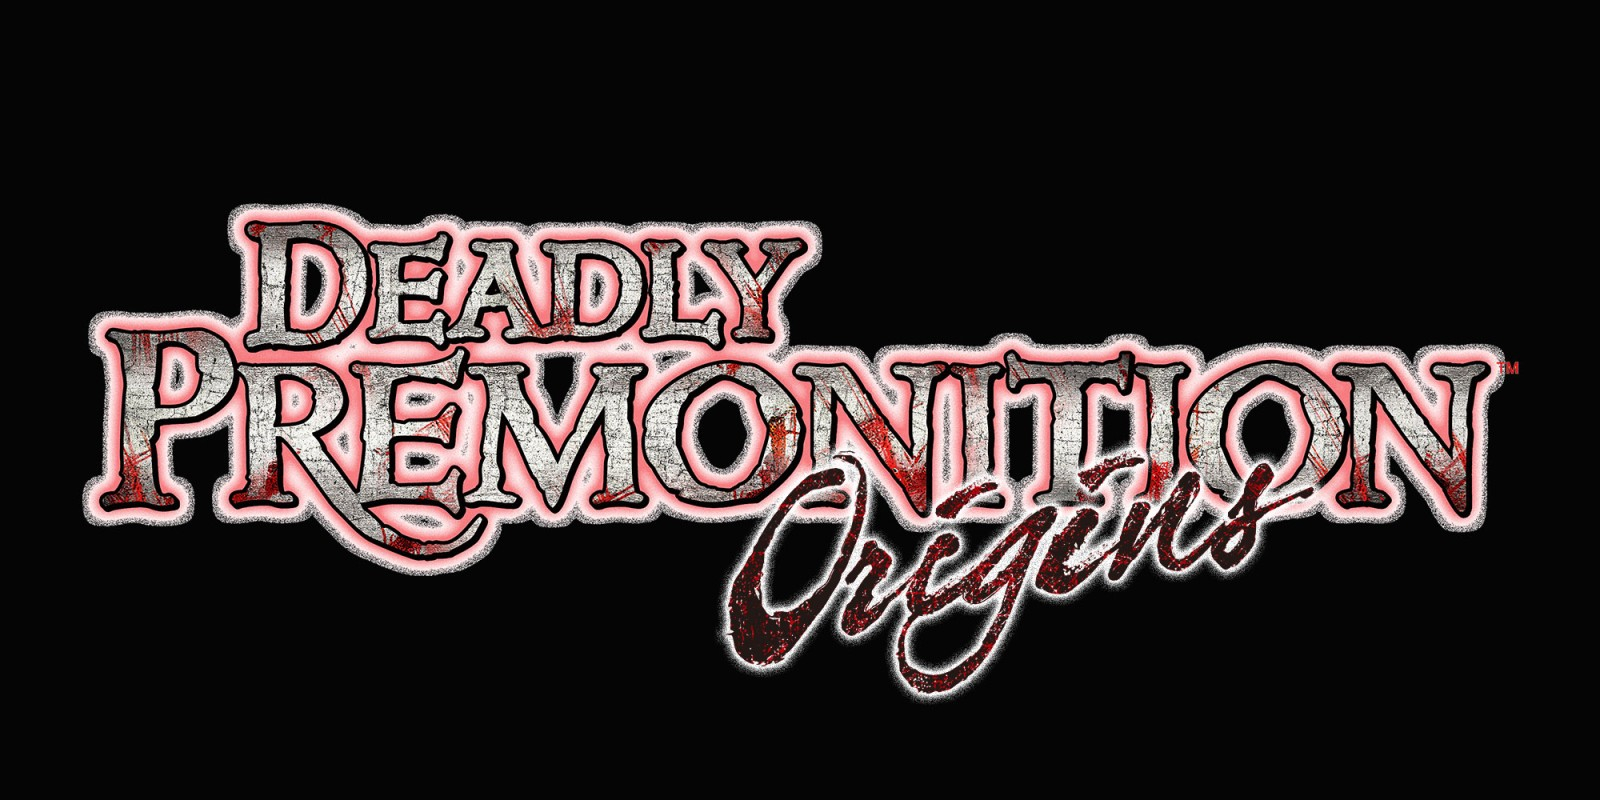 Deadly Premonition Origins Masthead